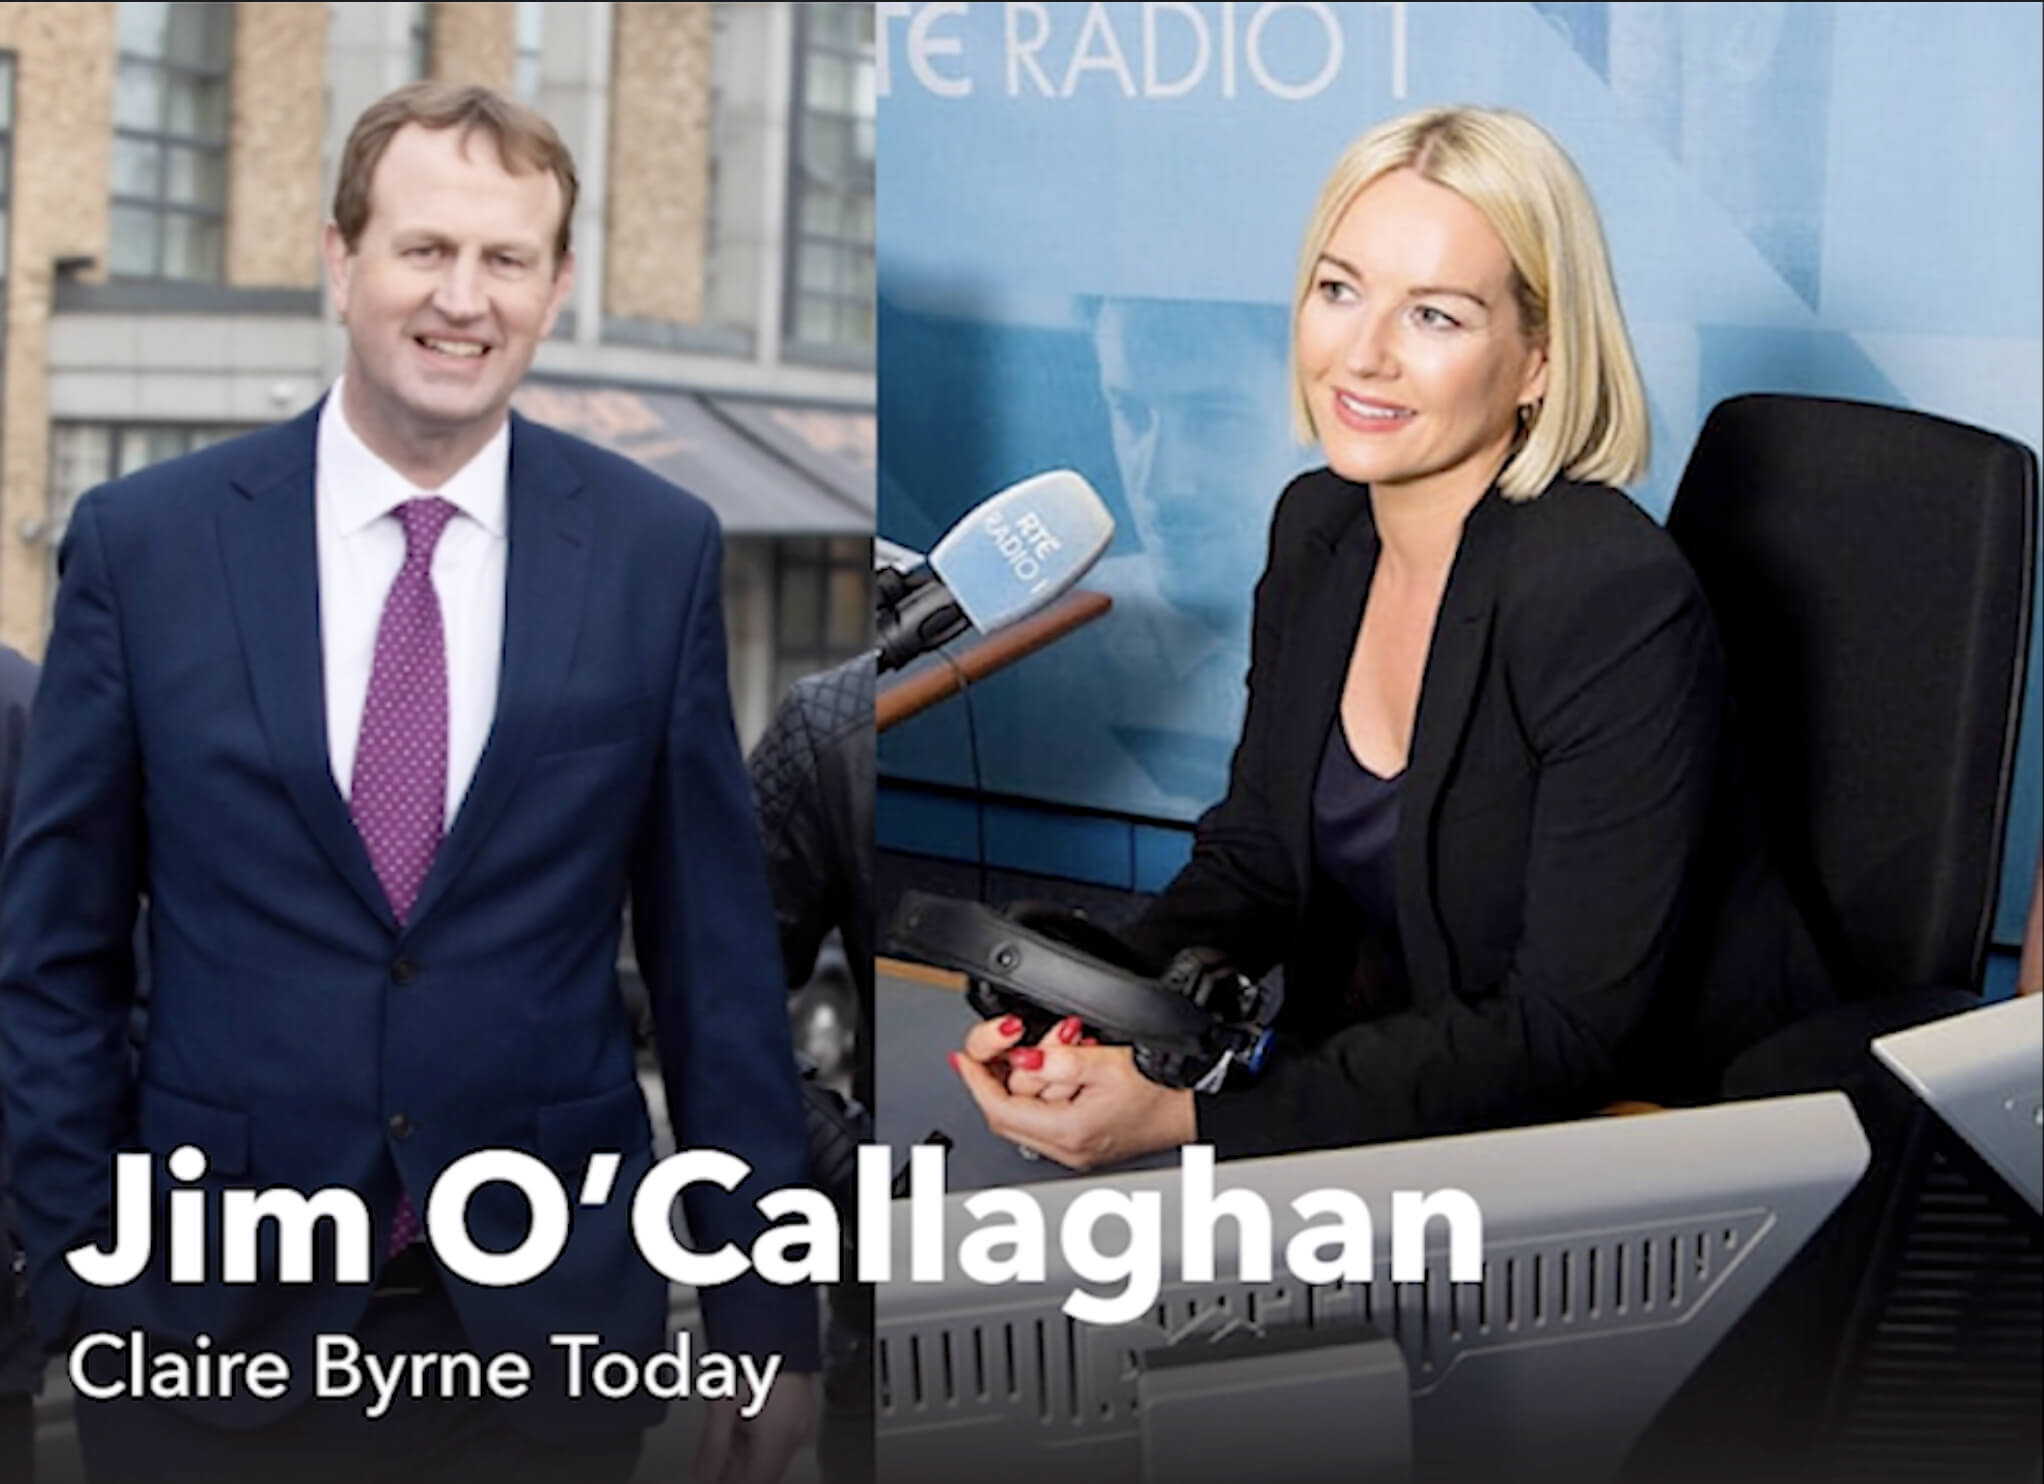 Jim speaking on Clare Byrne Show Image